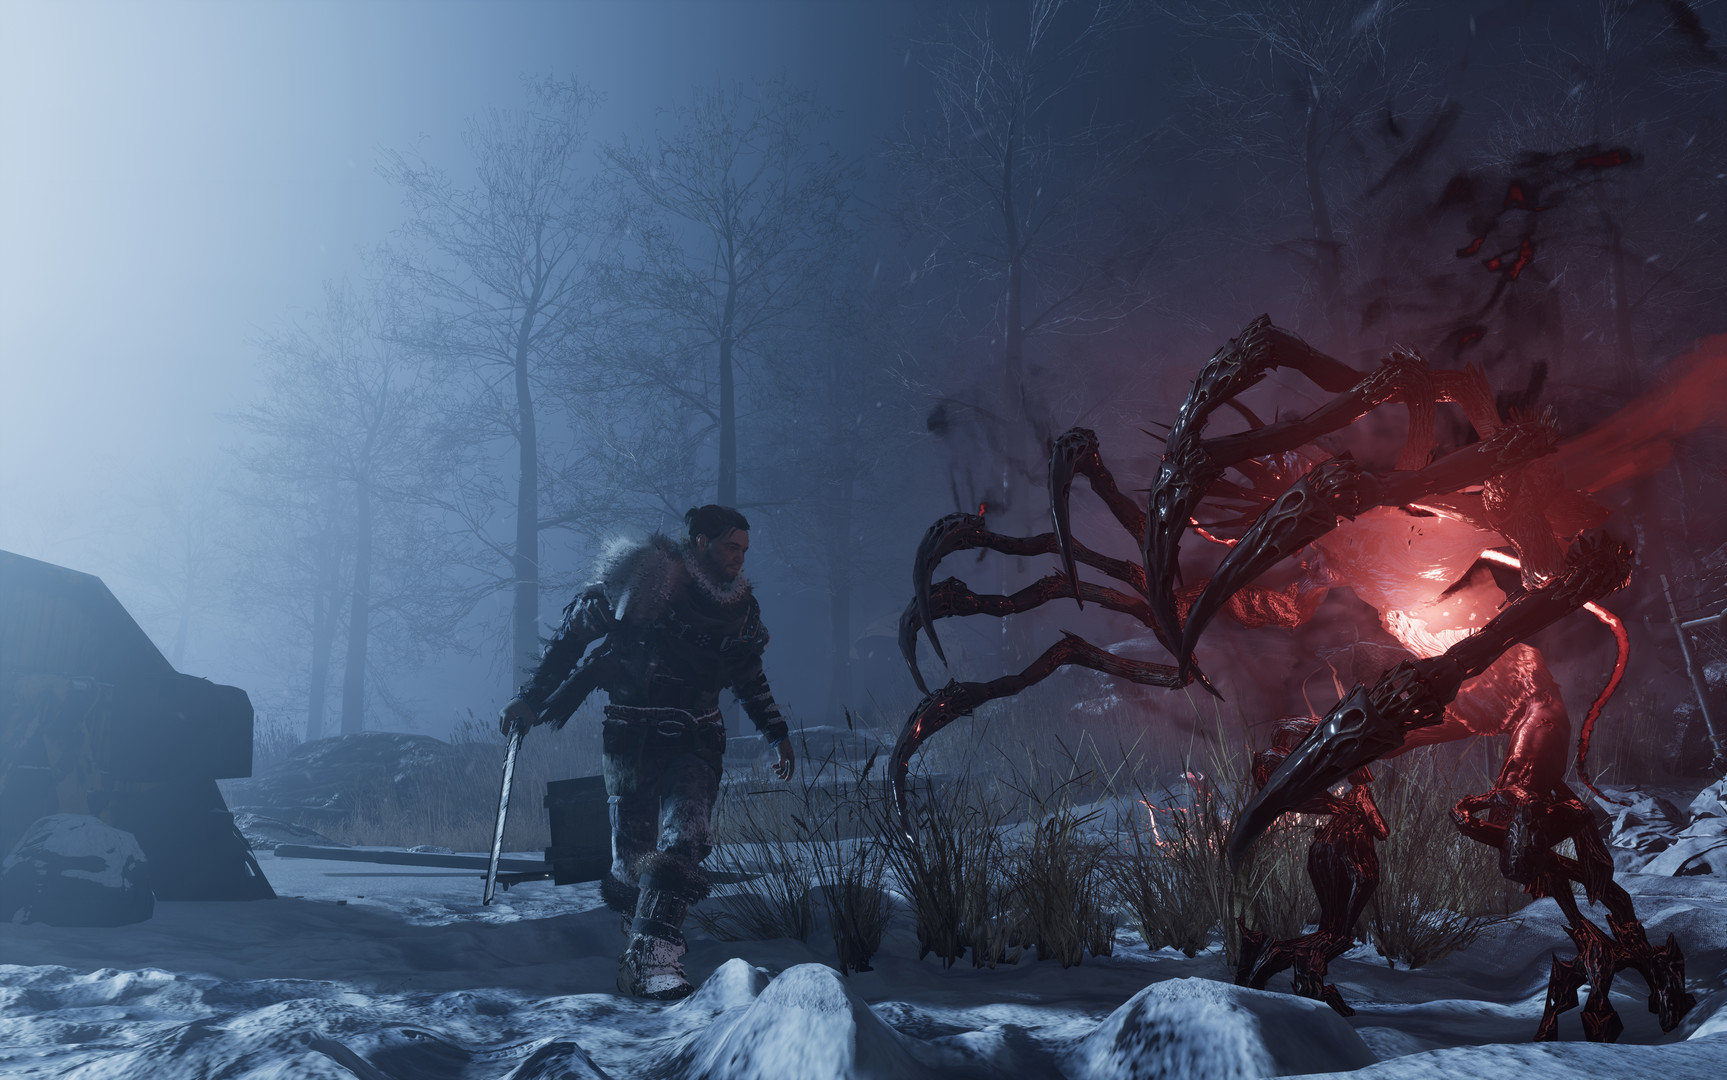 THQ Nordic's Fade to Silence is a survival game set in a frozen apocalypse